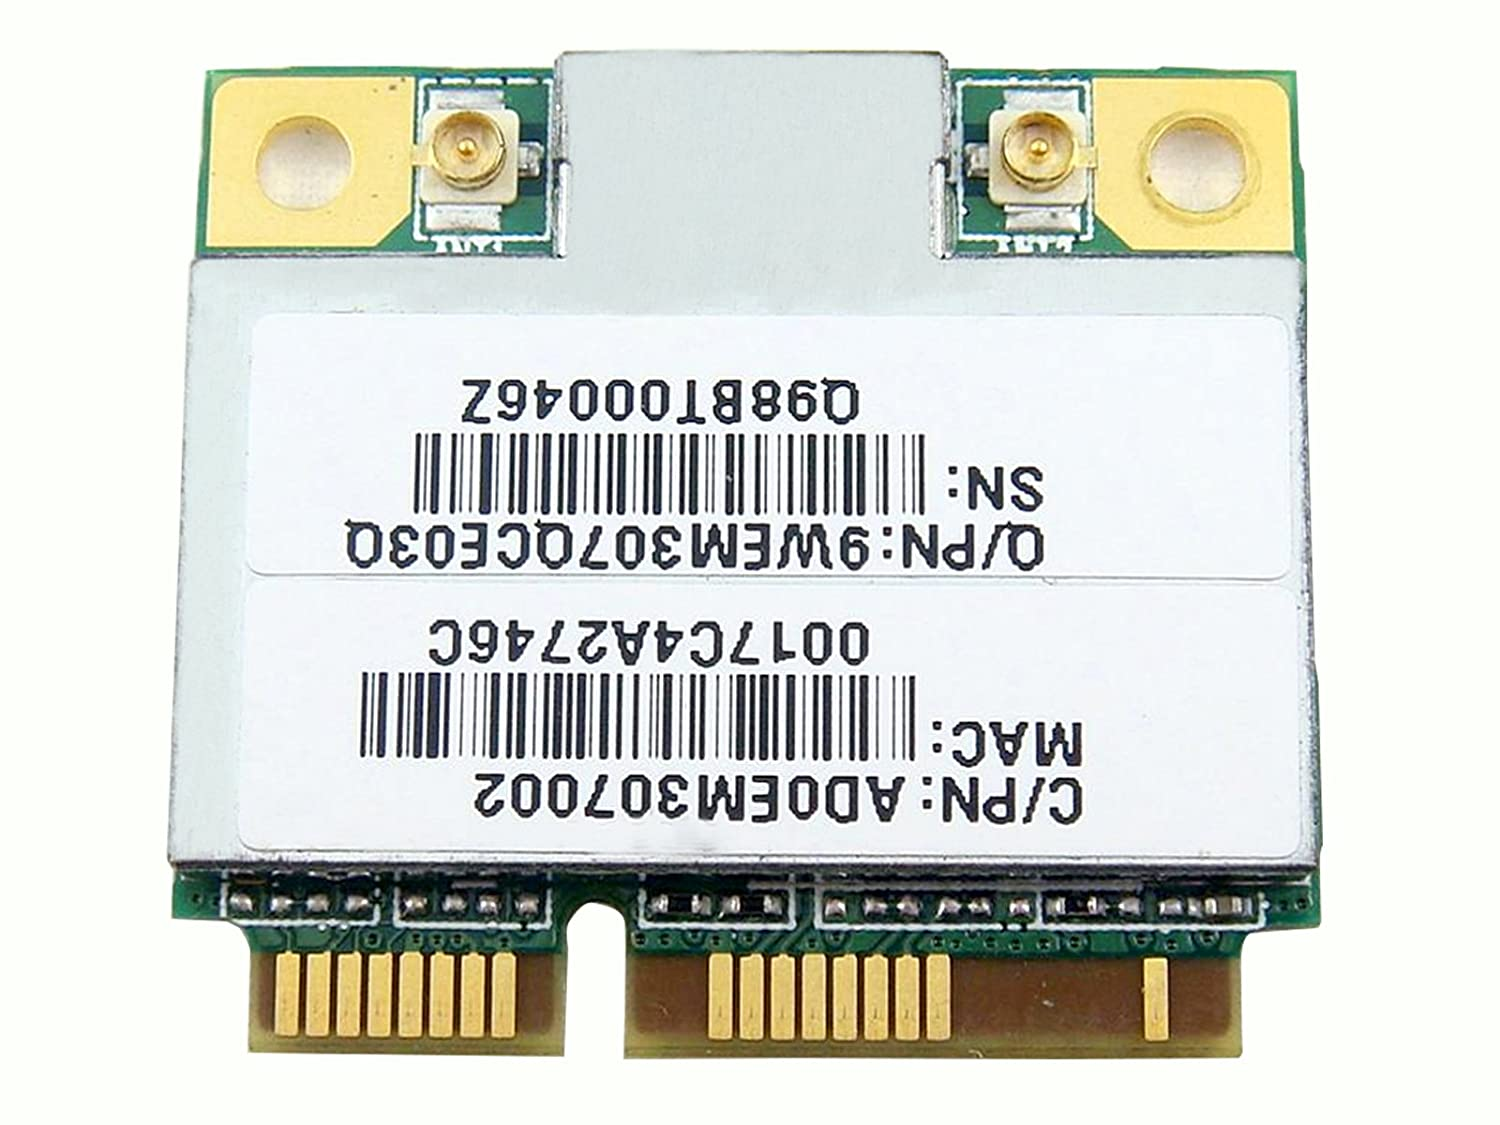 RALINK RT3090 WIFI ADAPTER WINDOWS 8 X64 DRIVER DOWNLOAD